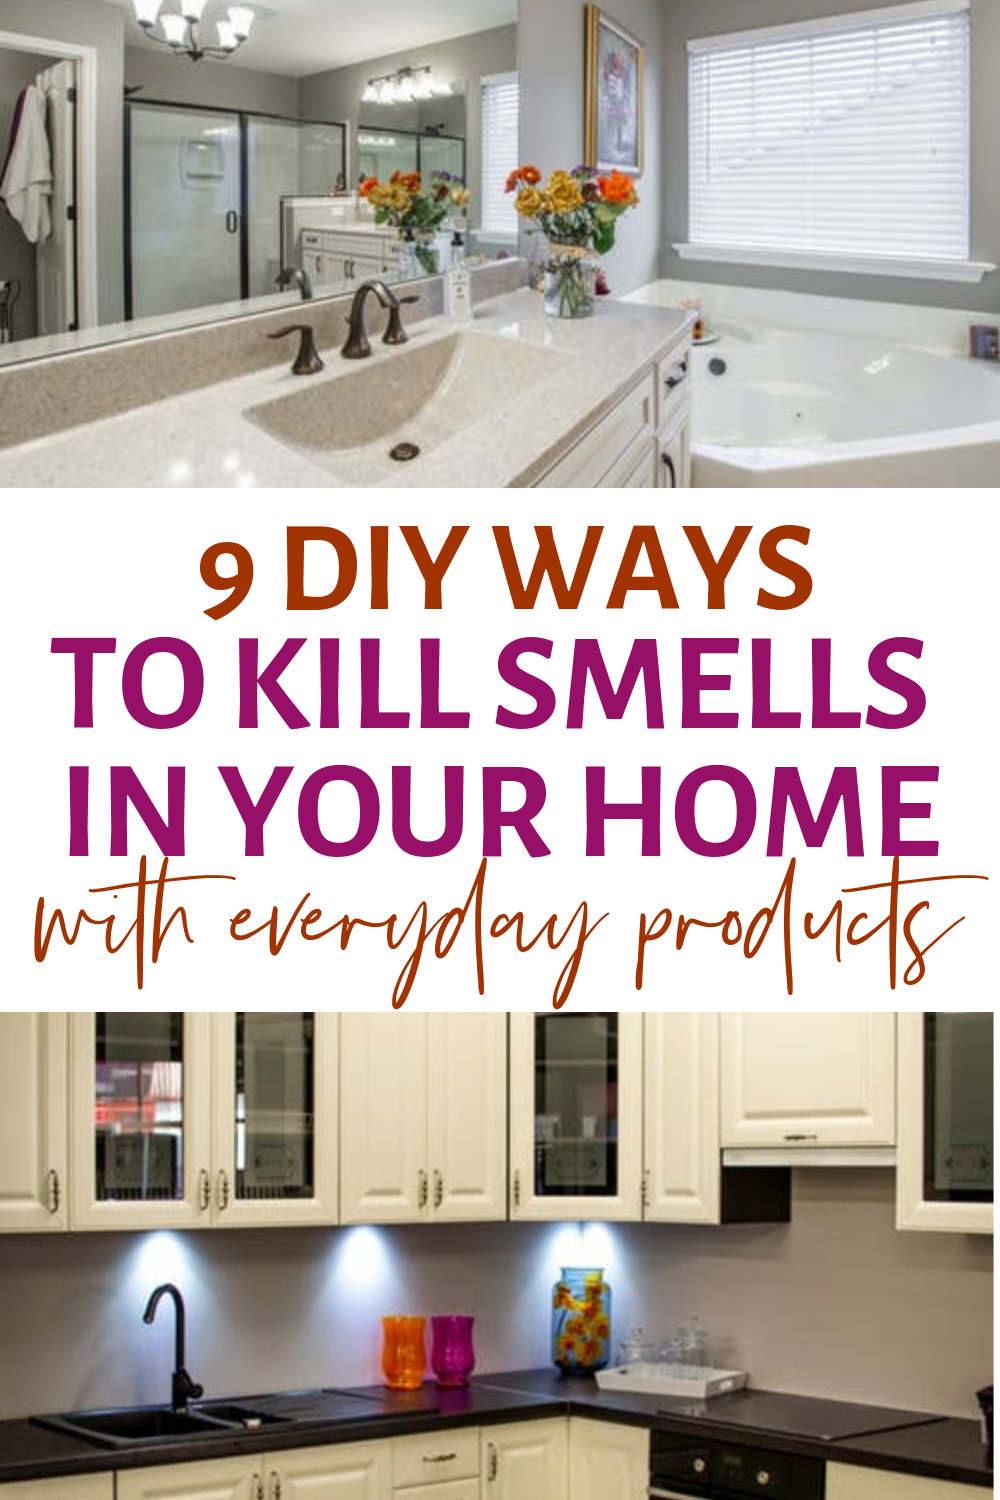 9 Diy Ways To Kill Smells In Your Home With Everyday Products